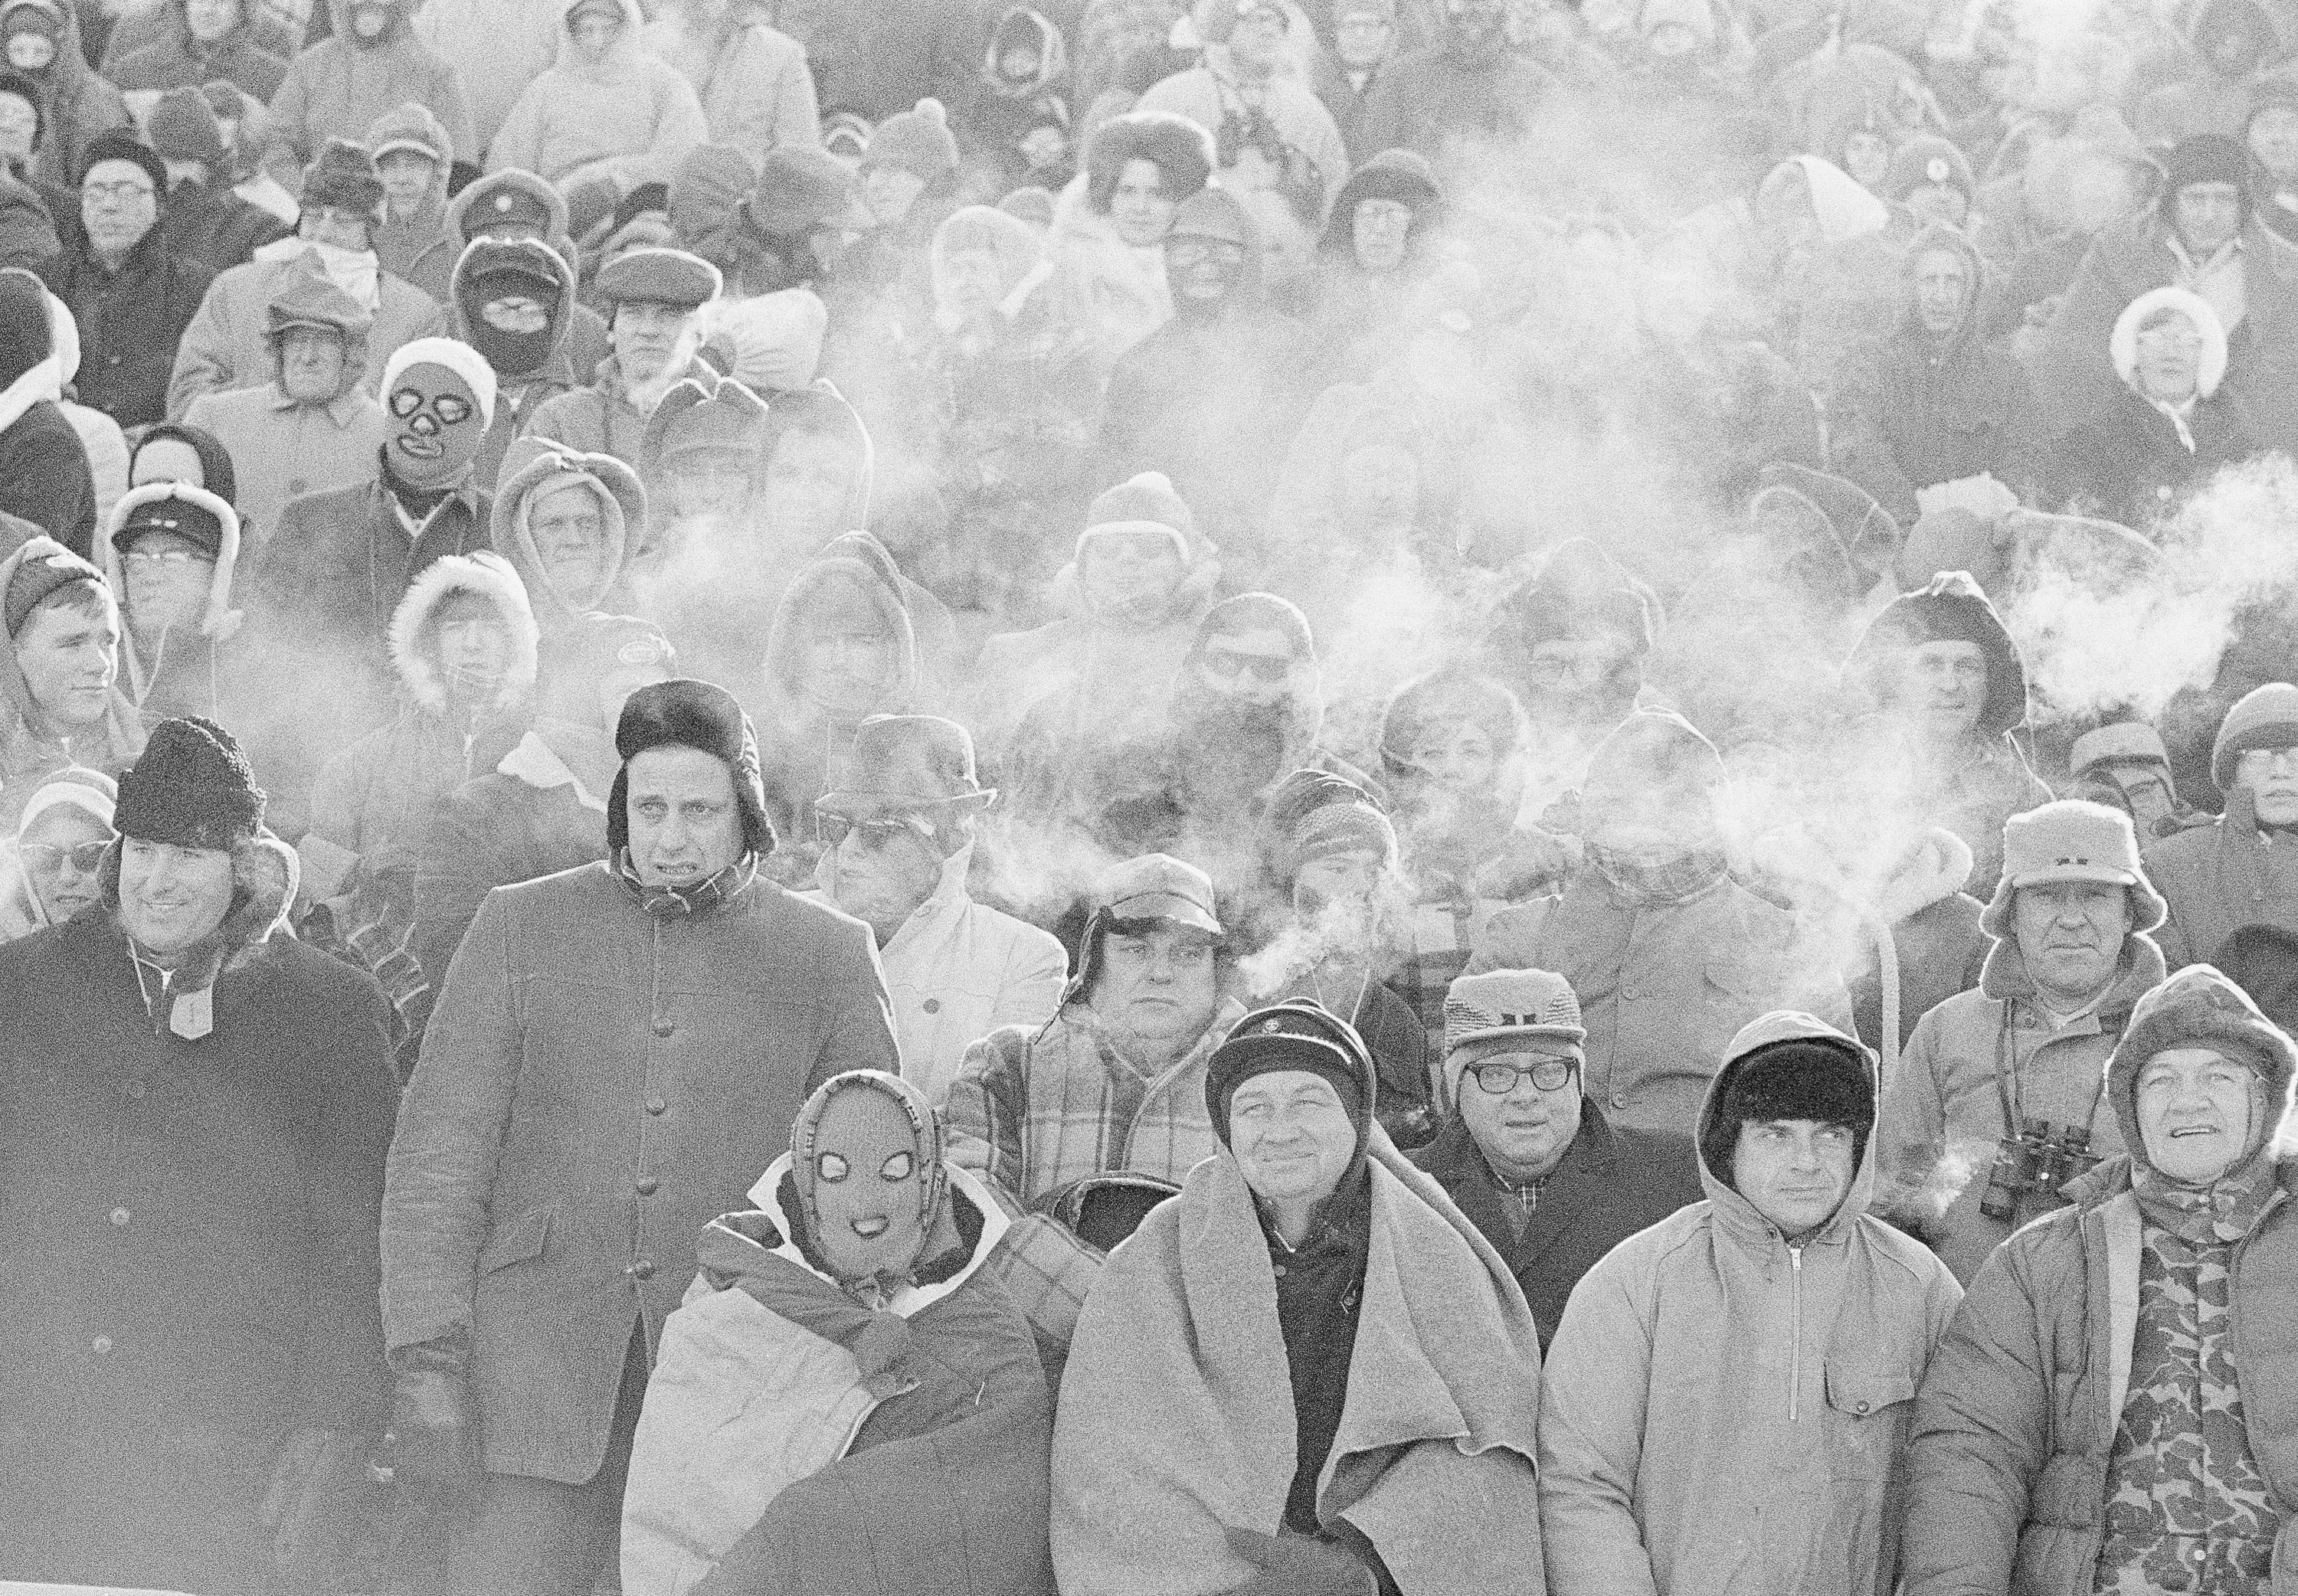 In this Dec. 31, 1967, file photo, fans watch the Green Bay Packers play the Dallas Cowboys in the NFL Championship game in Green Bay. (AP Photo/File)